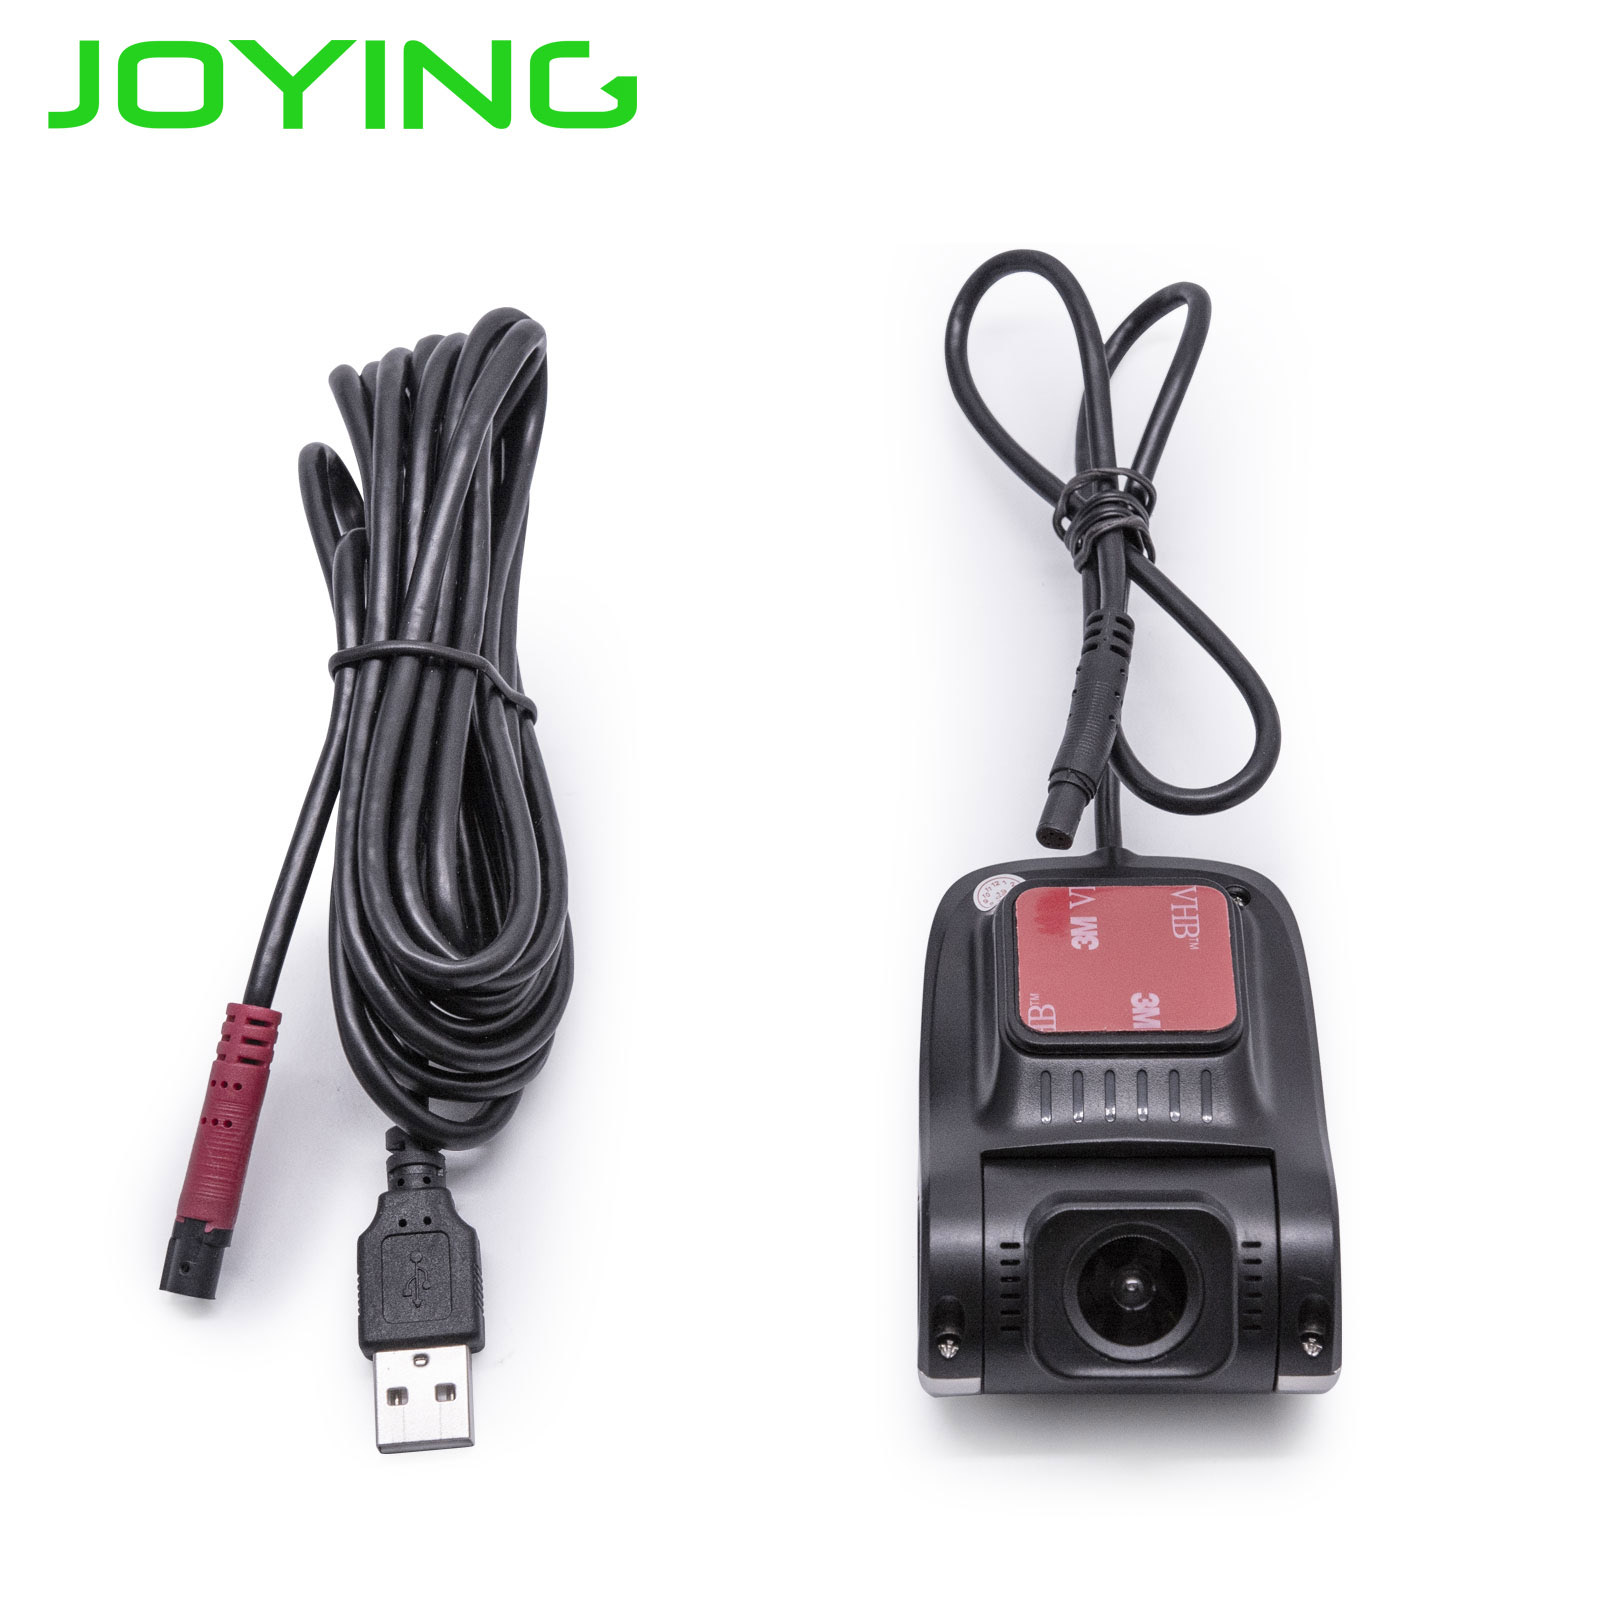 JOYING Recorder Voice-Camera Car-Radio Android For Head-Unit DVR Usb-Port Special-Only